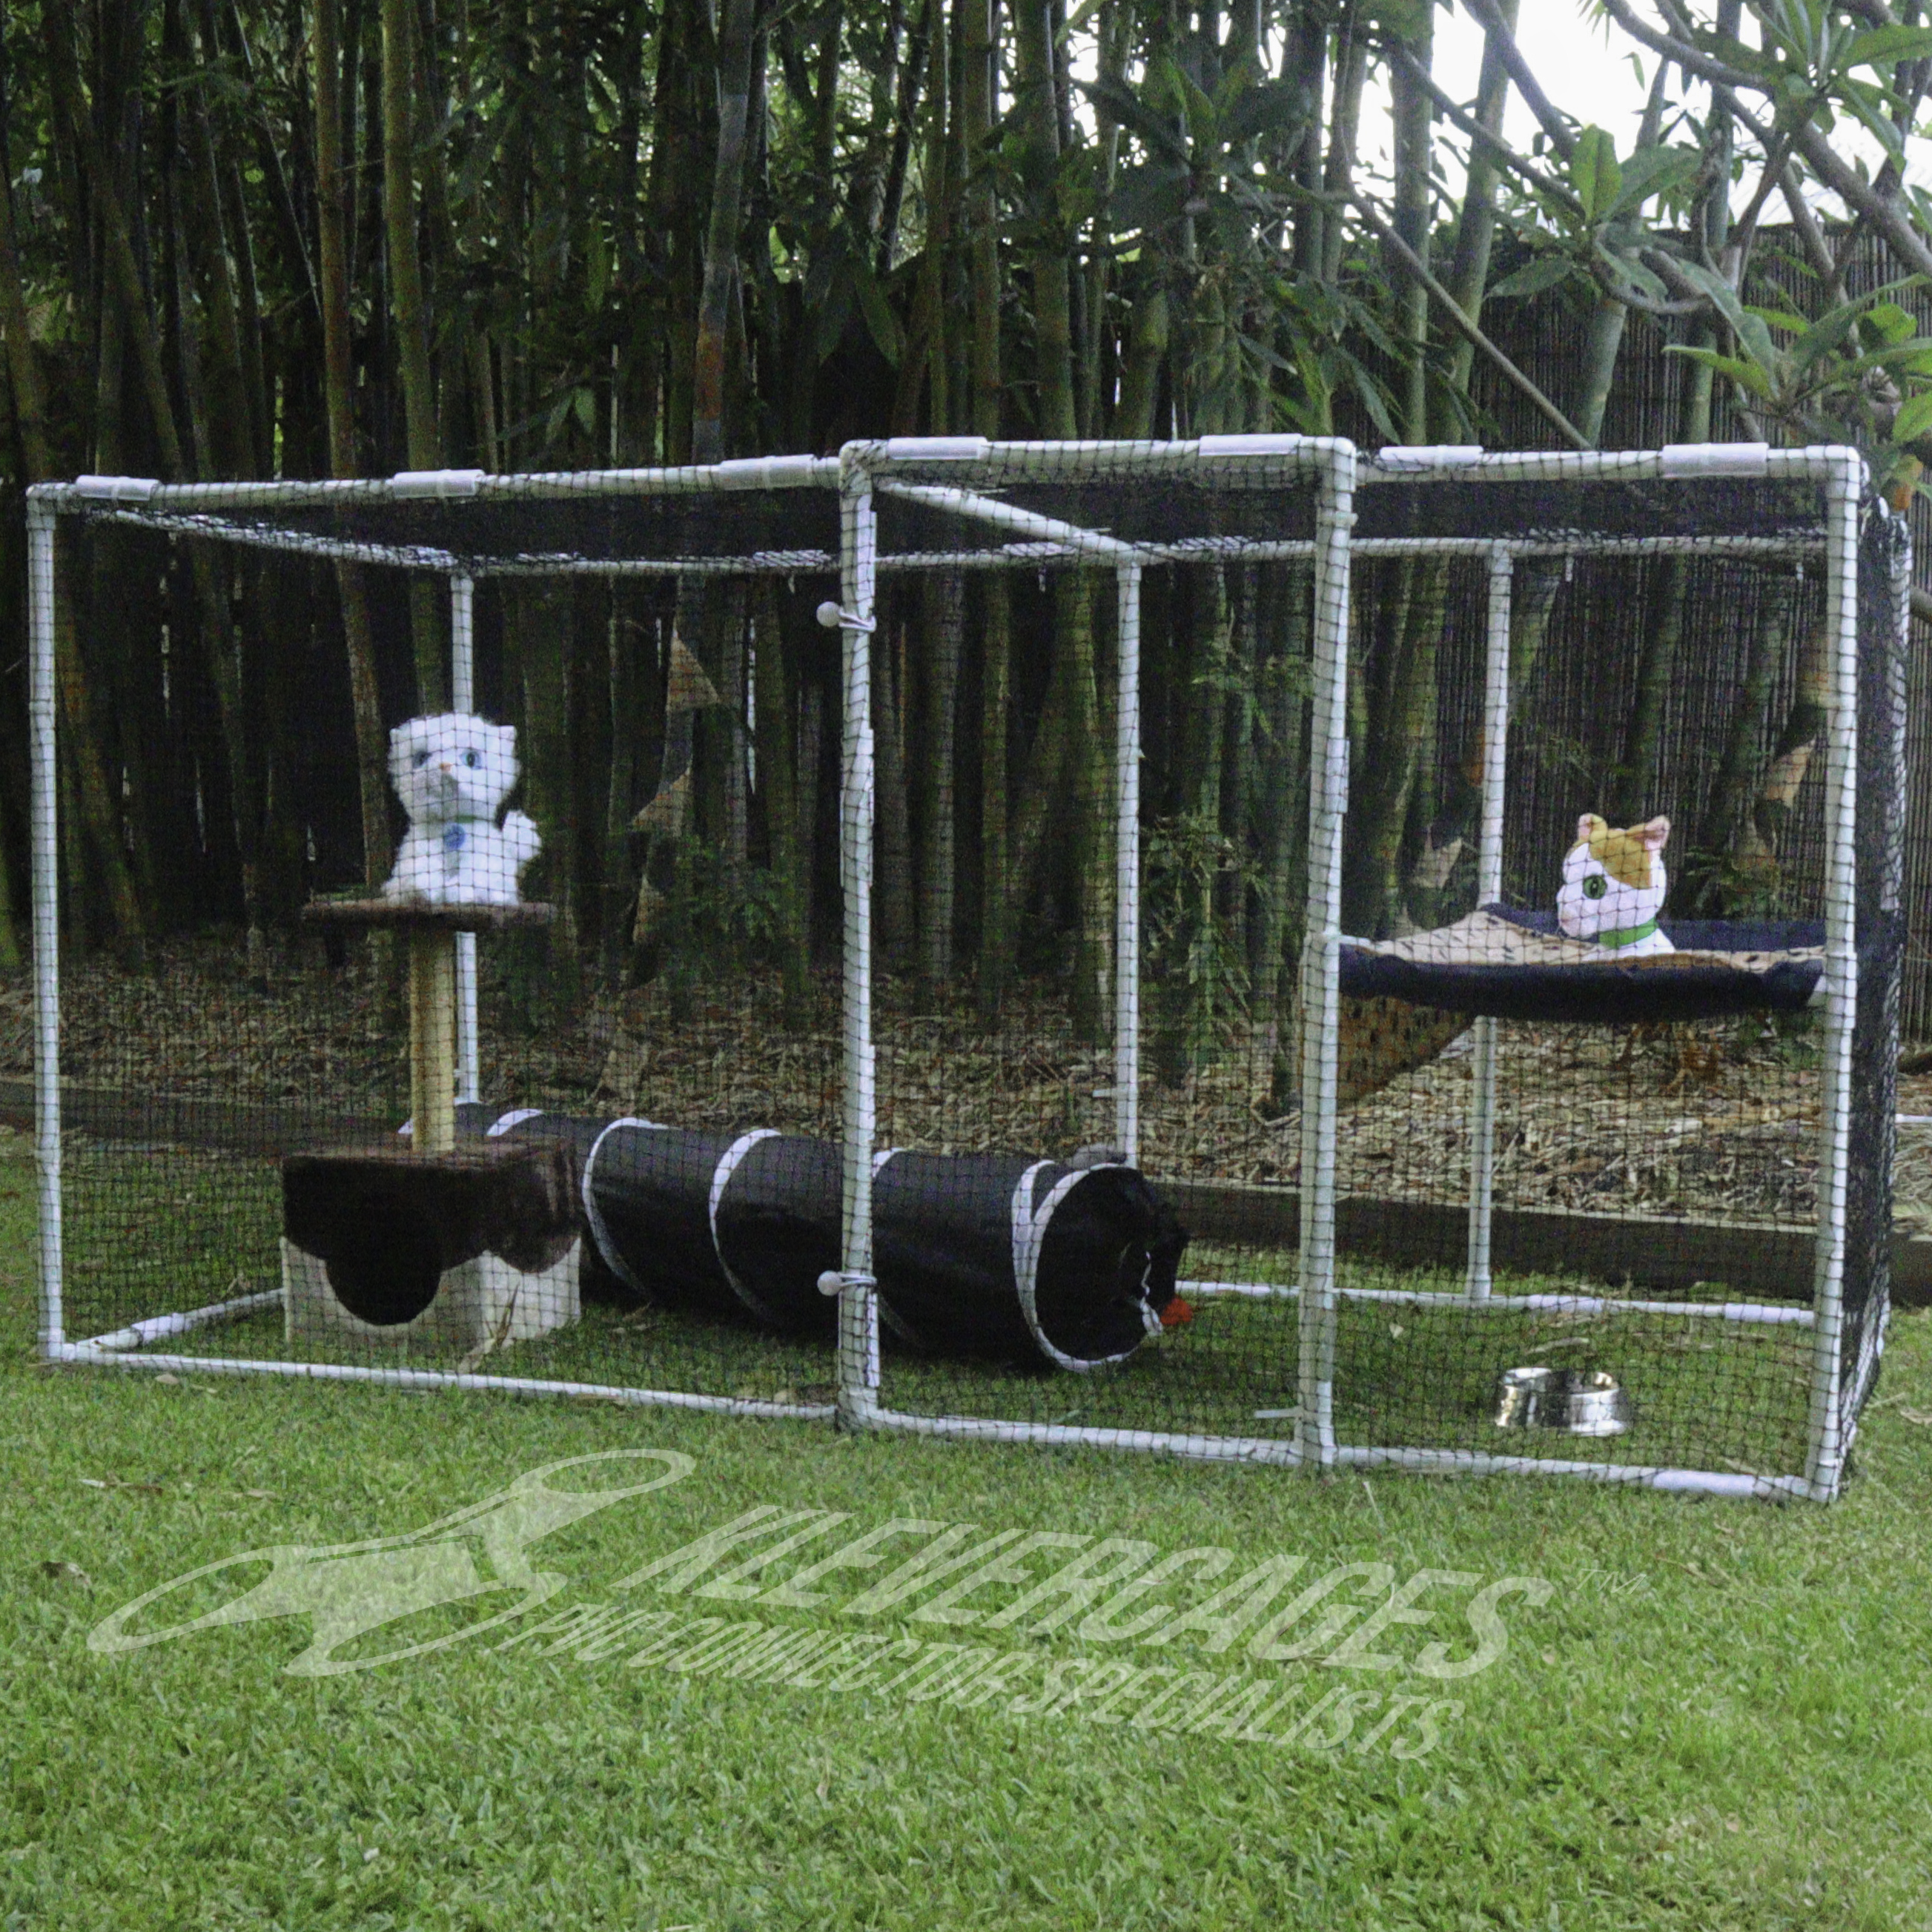 Catio Outdoor cat enclosure kit suitable for 2 cats available from Klever Cages. Frame built from PVC pipe and Klever Connectors with cat netting attached with snap clamps